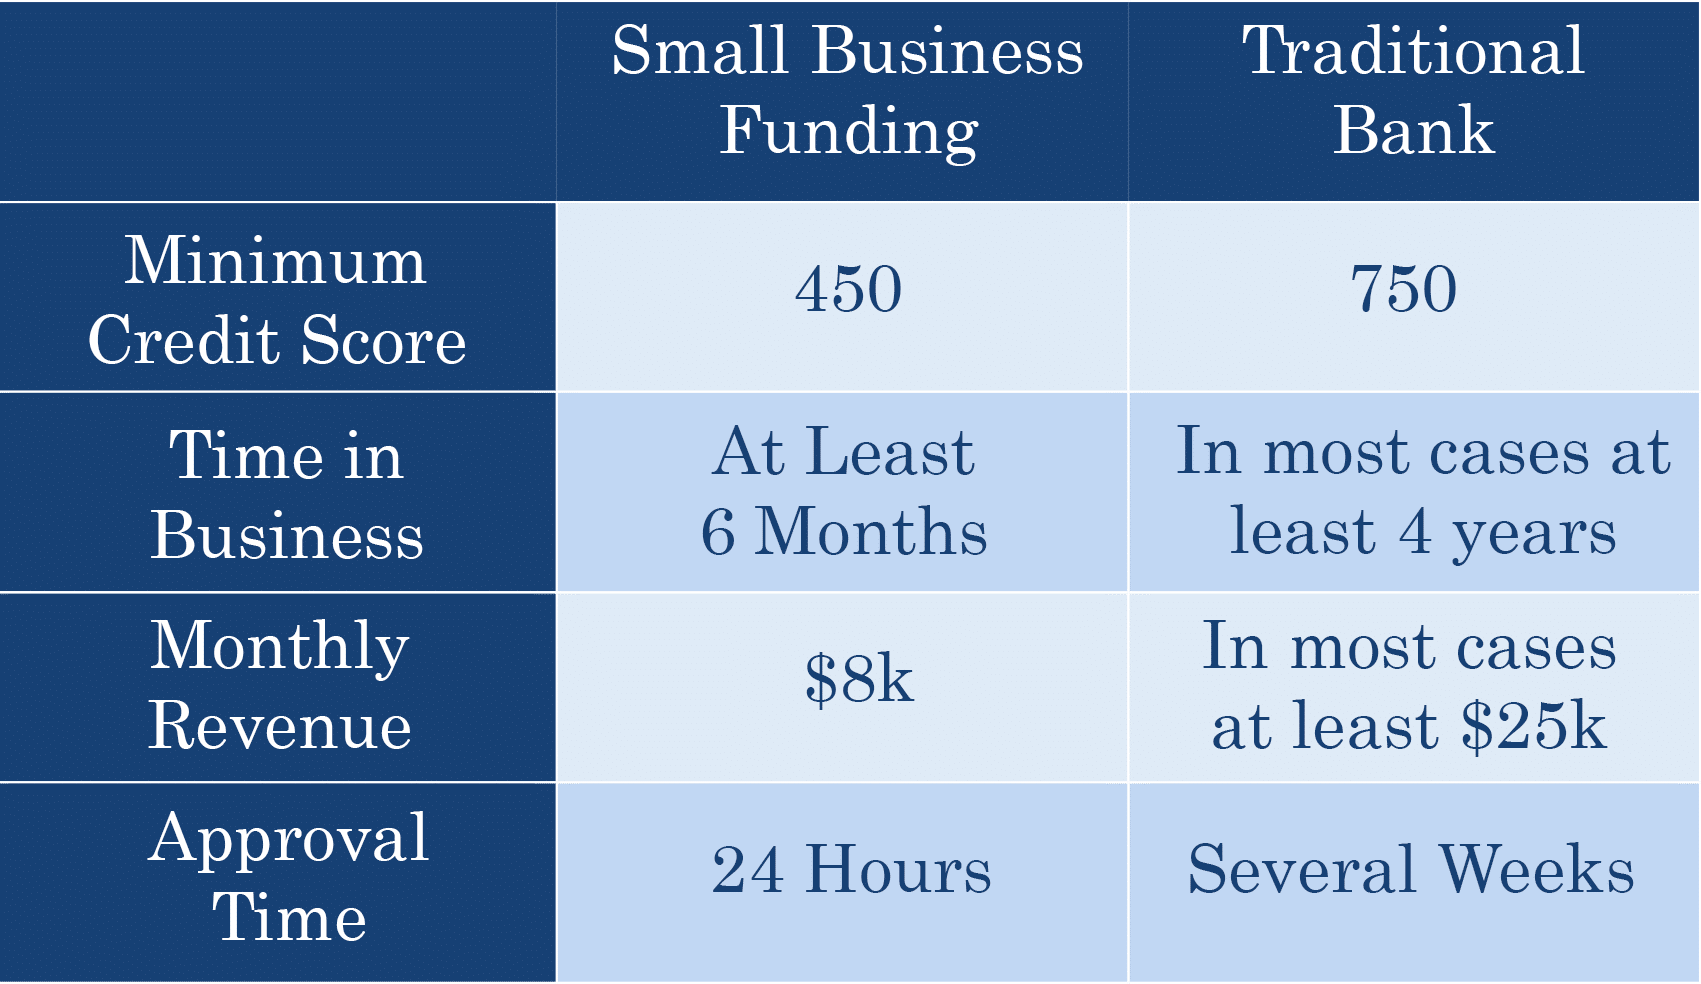 Small Business Funding vs Traditional Bank Comparison